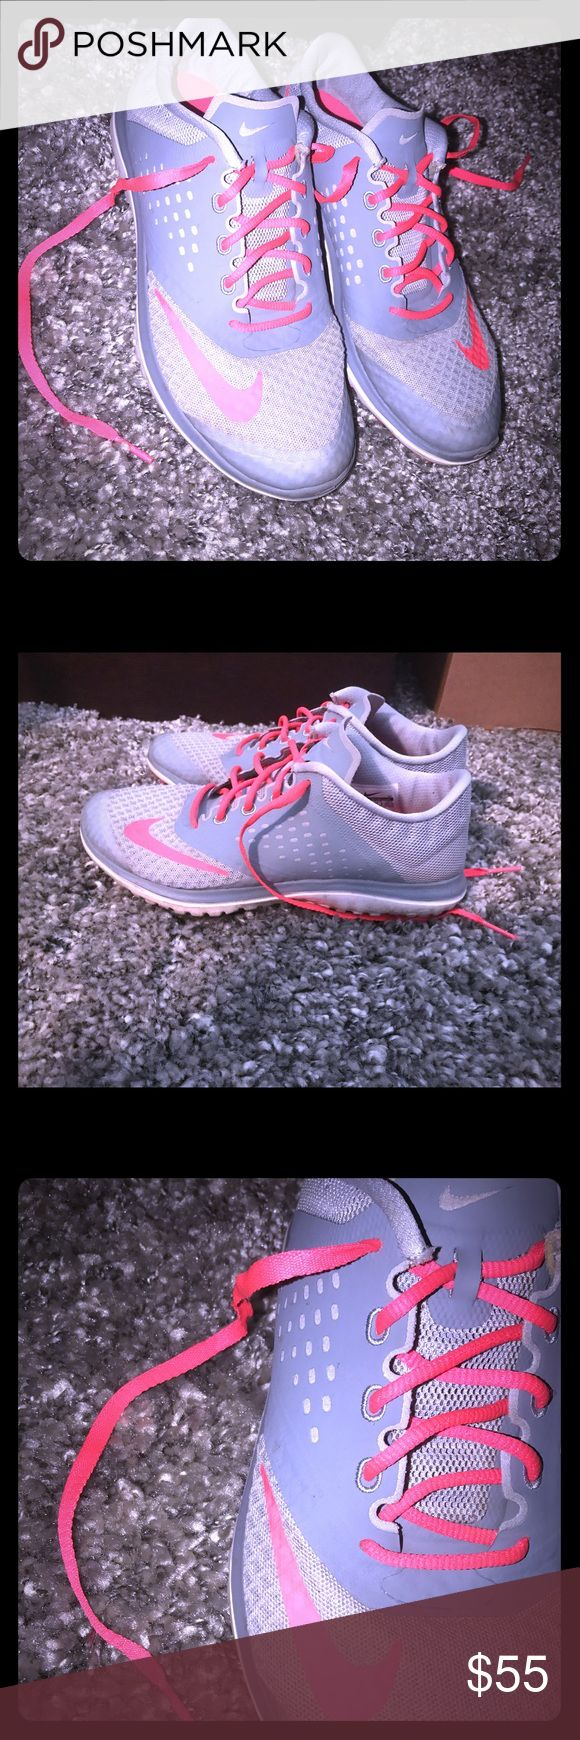 Nike training shoes size 6.5 W Size 6.5 womens pink and grey/silver  Nike symbol hot pink . Training Nike shoes. Love love love these! Nike Shoes Athletic Shoes